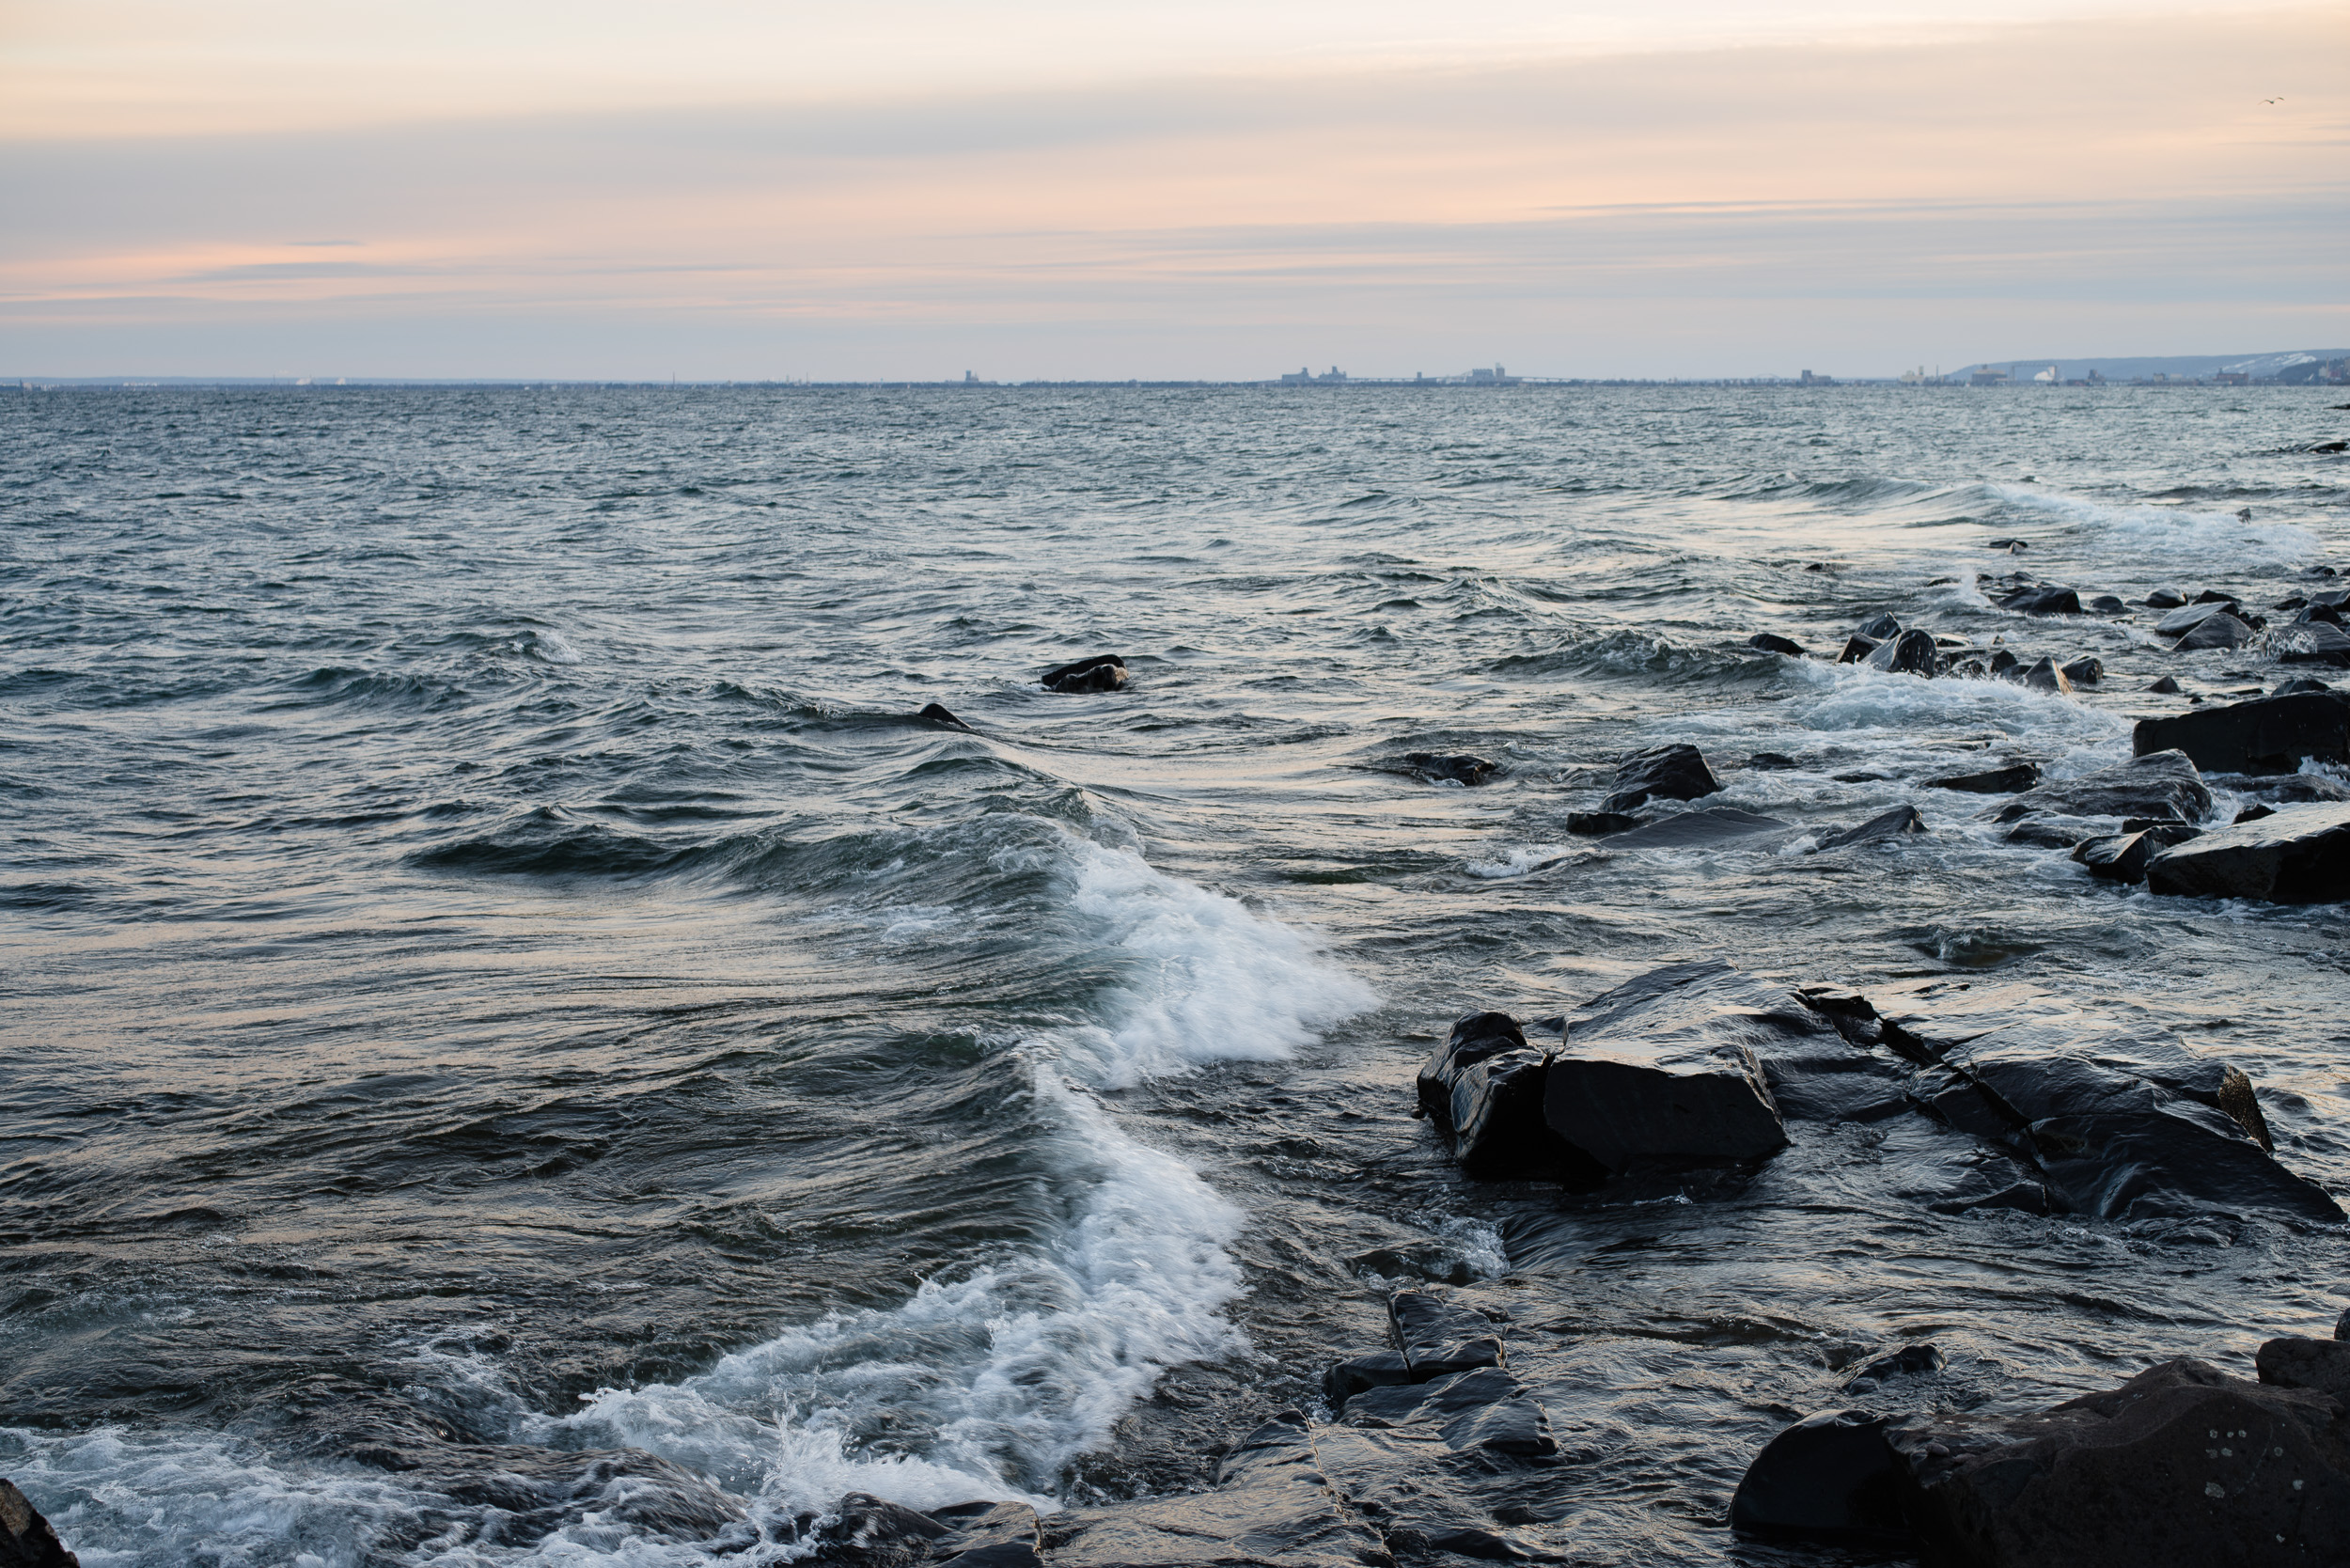 Lake Superior last March, Duluth, MN. #50mm #lakesuperior #northshore #Minnesota #waves